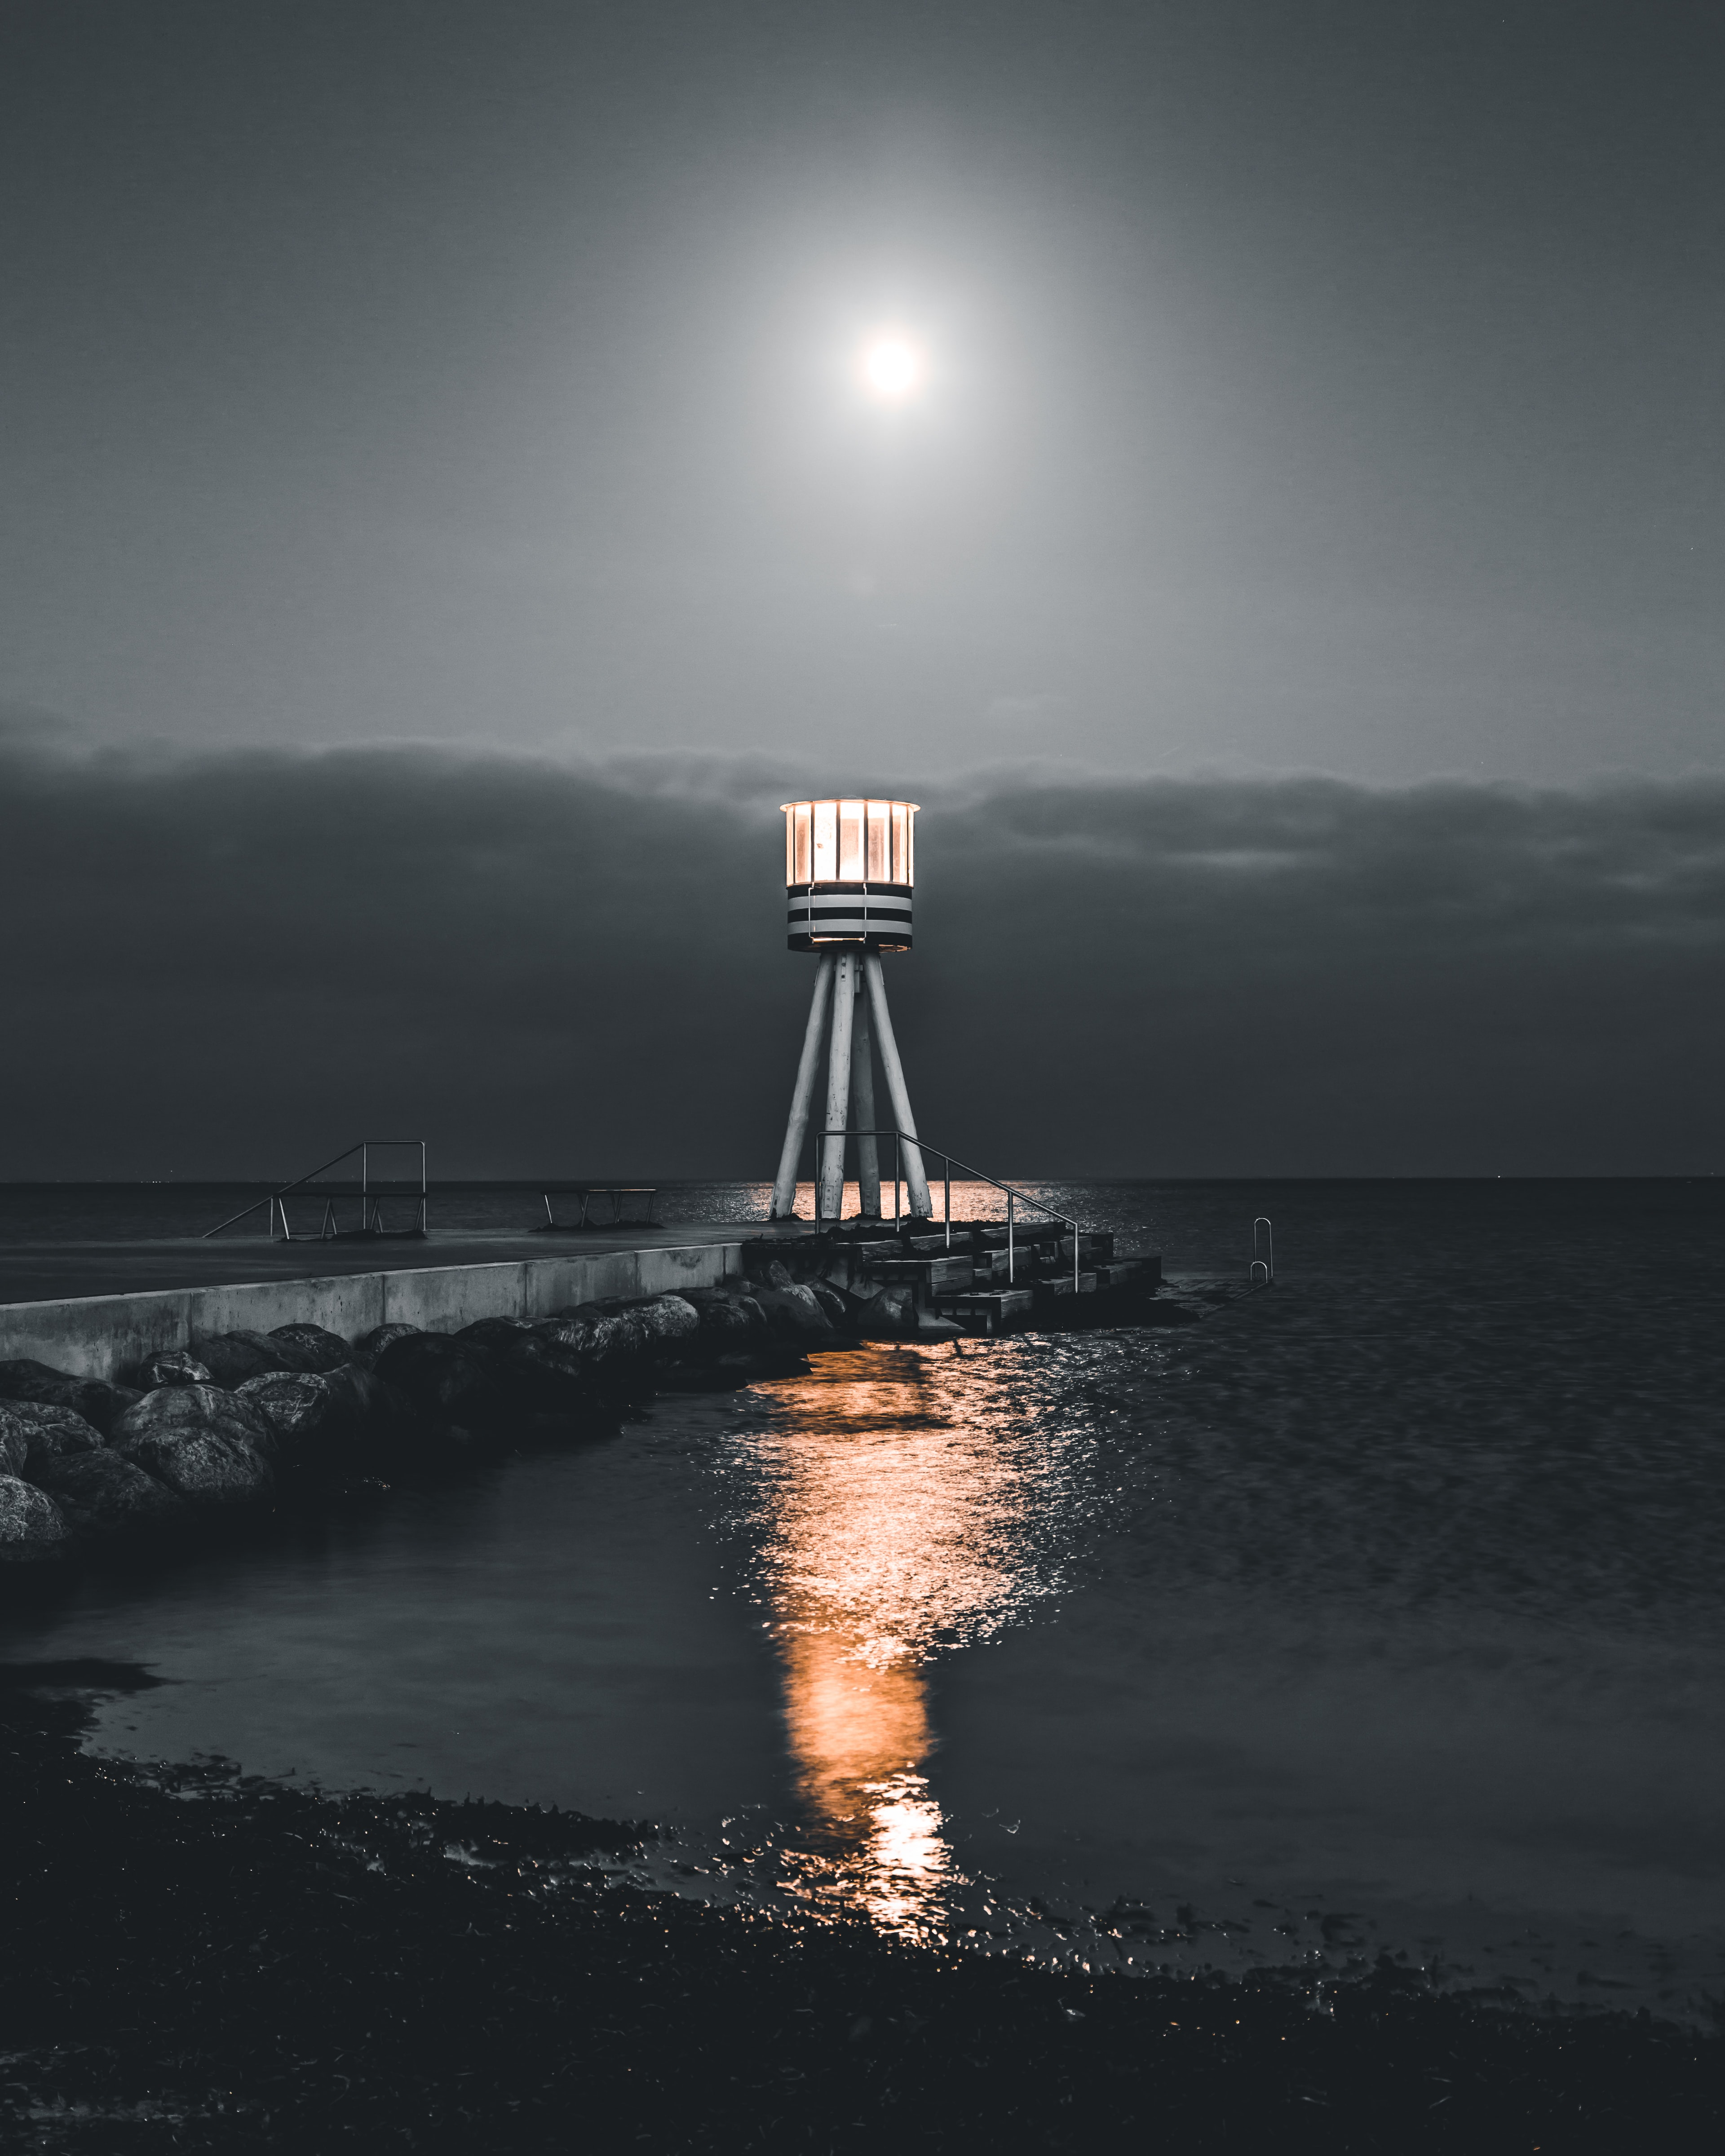 lighthouse at the dock during night